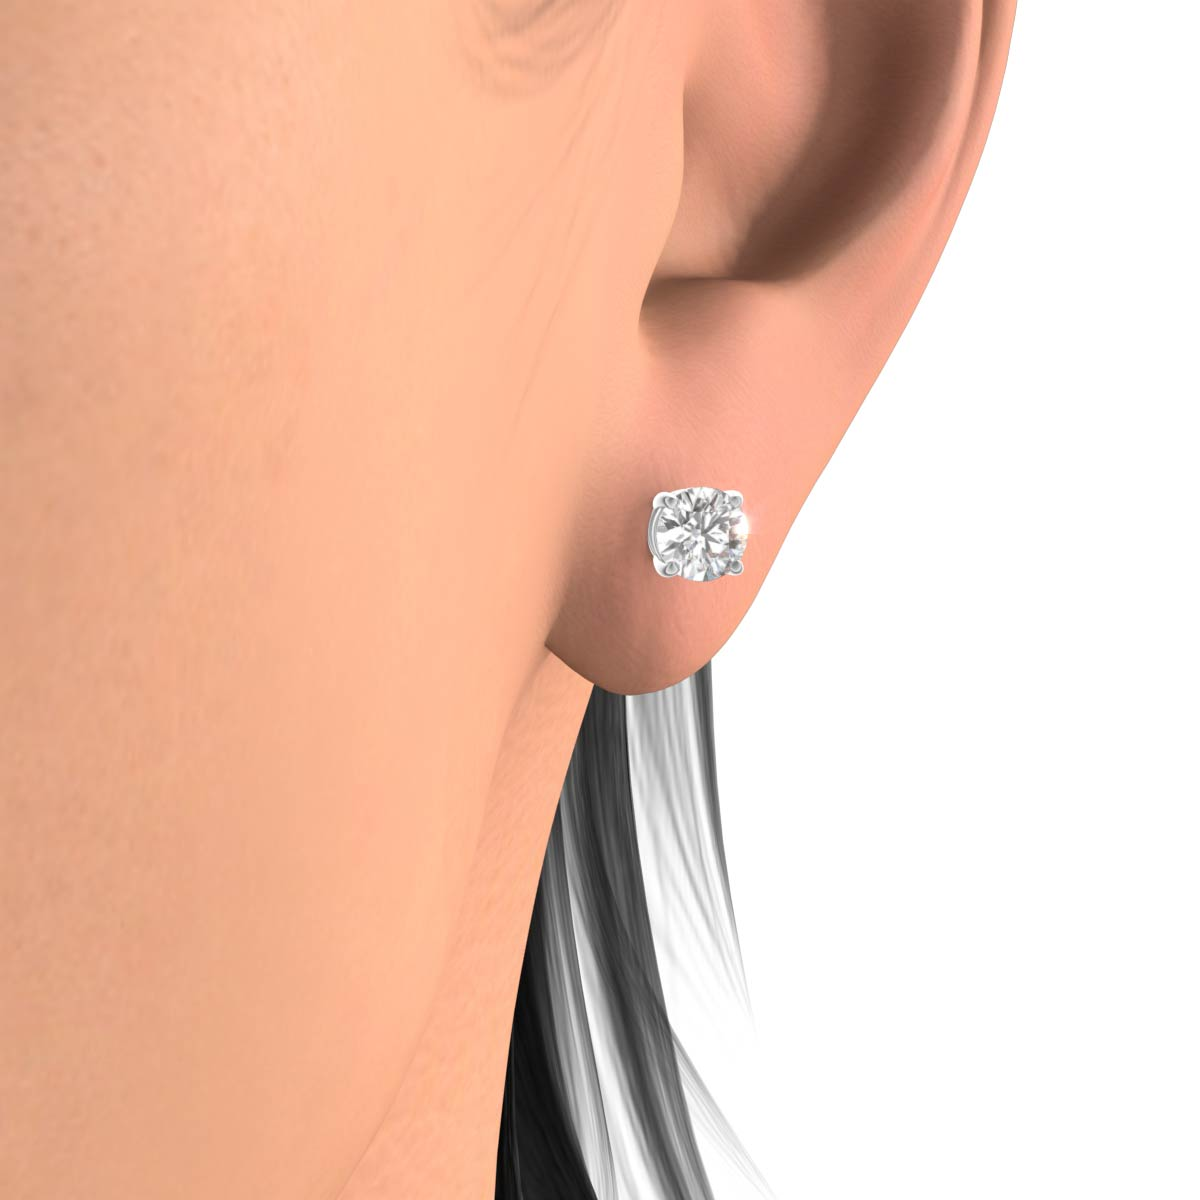 cut sterling silver white beauty platinum earrings sightly synthetic carat stud from jewelry diamond item in plated diamonds cushion piece color gold